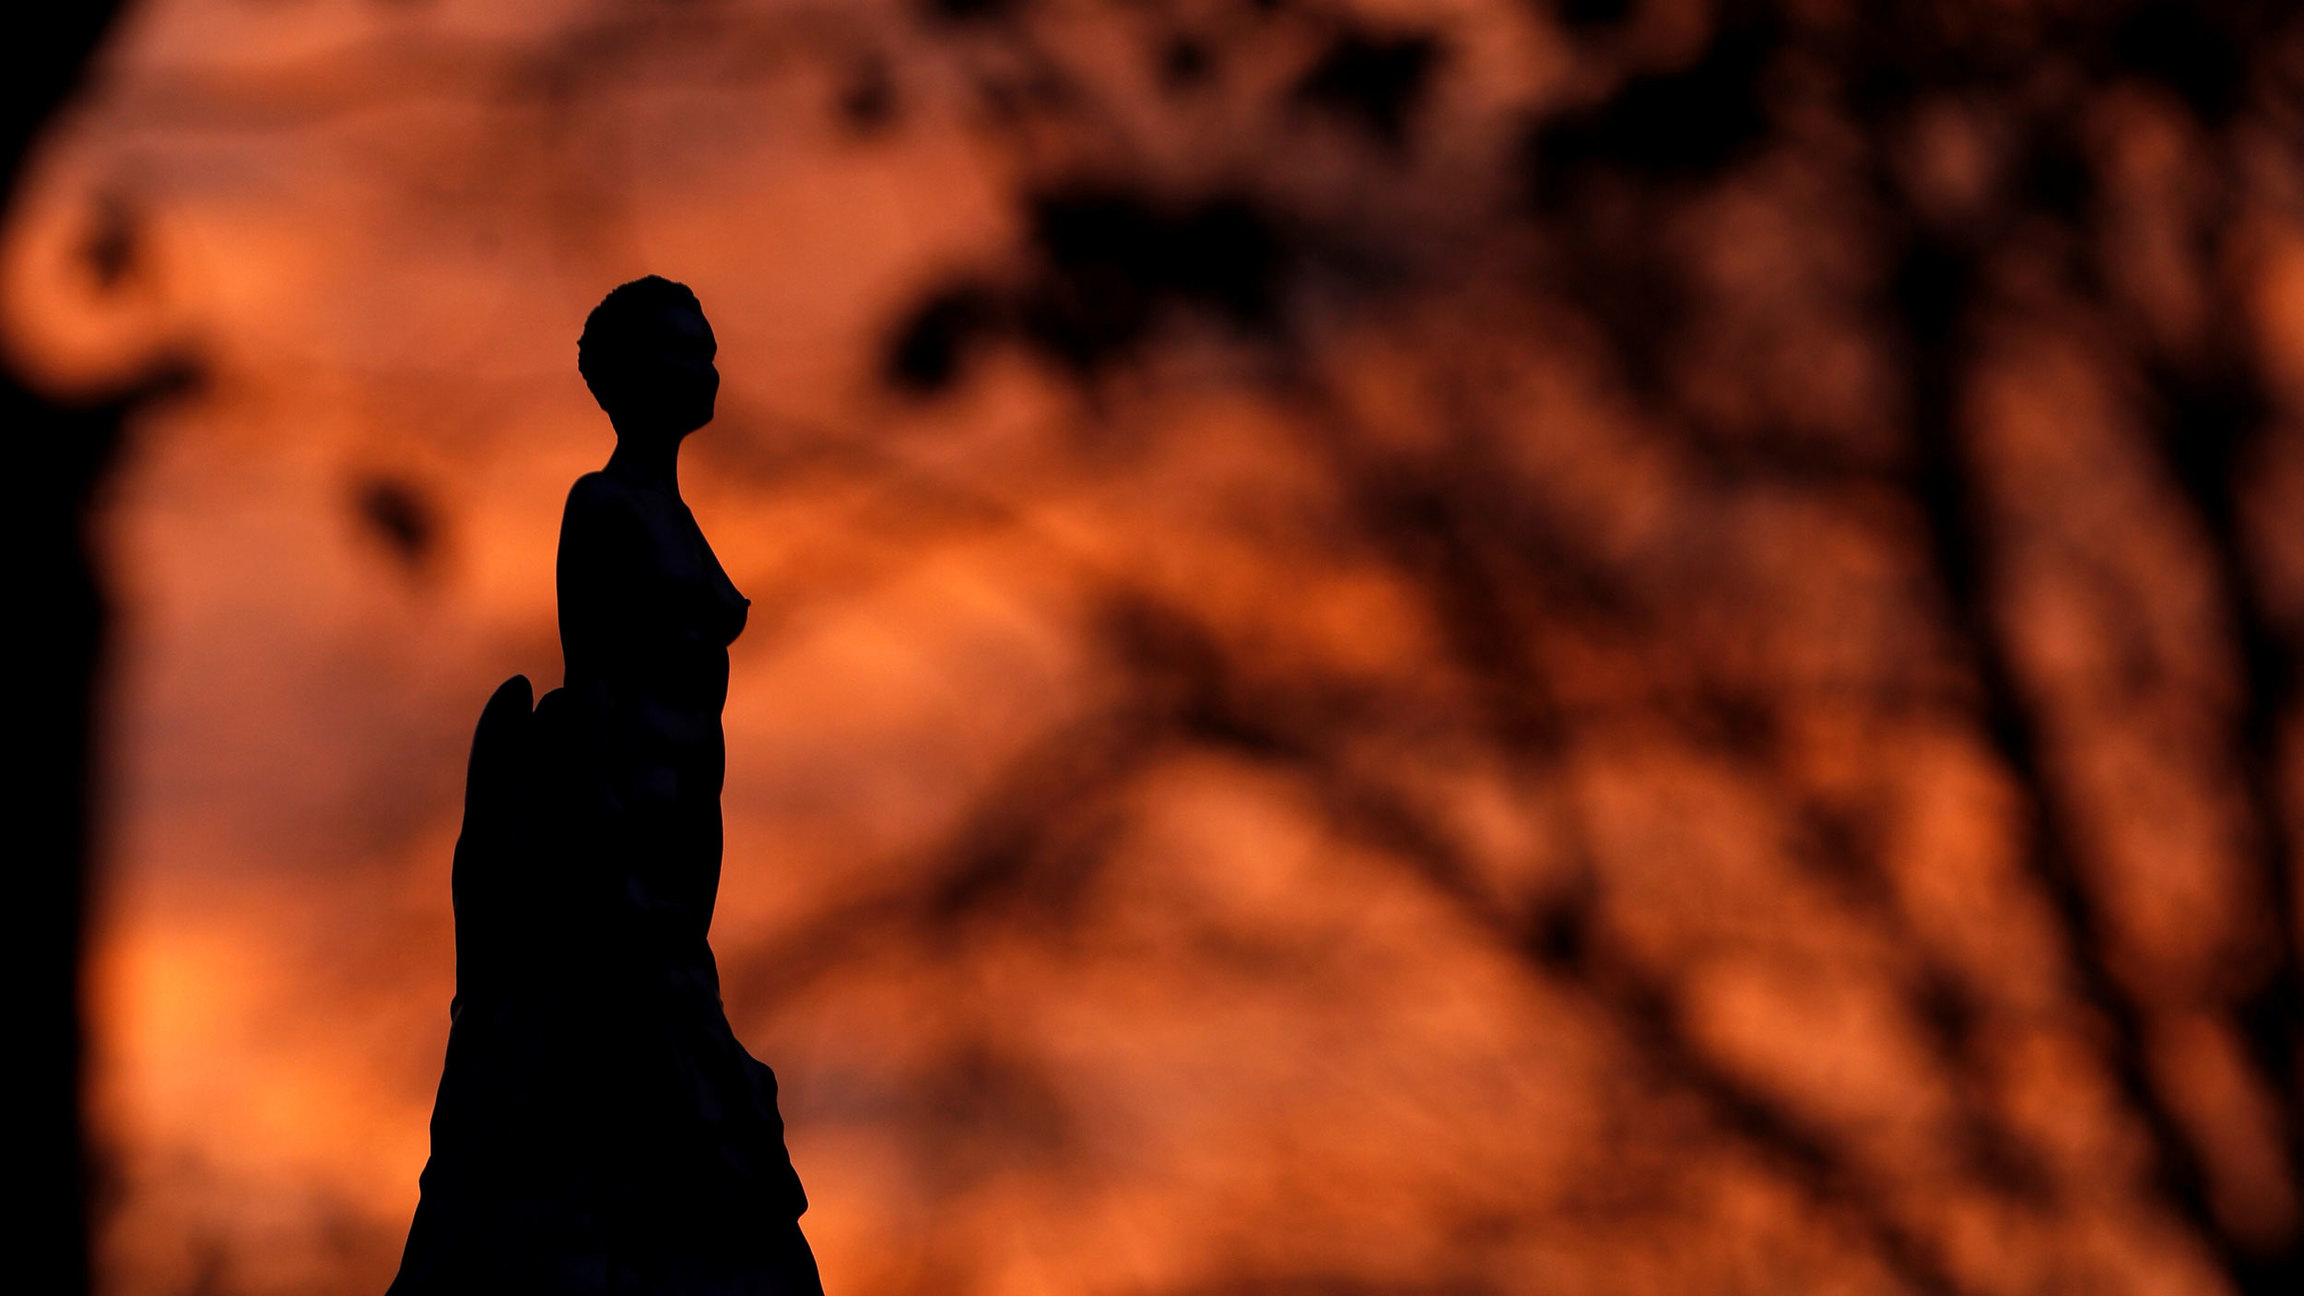 The dark silhouetted of a statue is shown with the orange and red colors of a sunset in the distance.